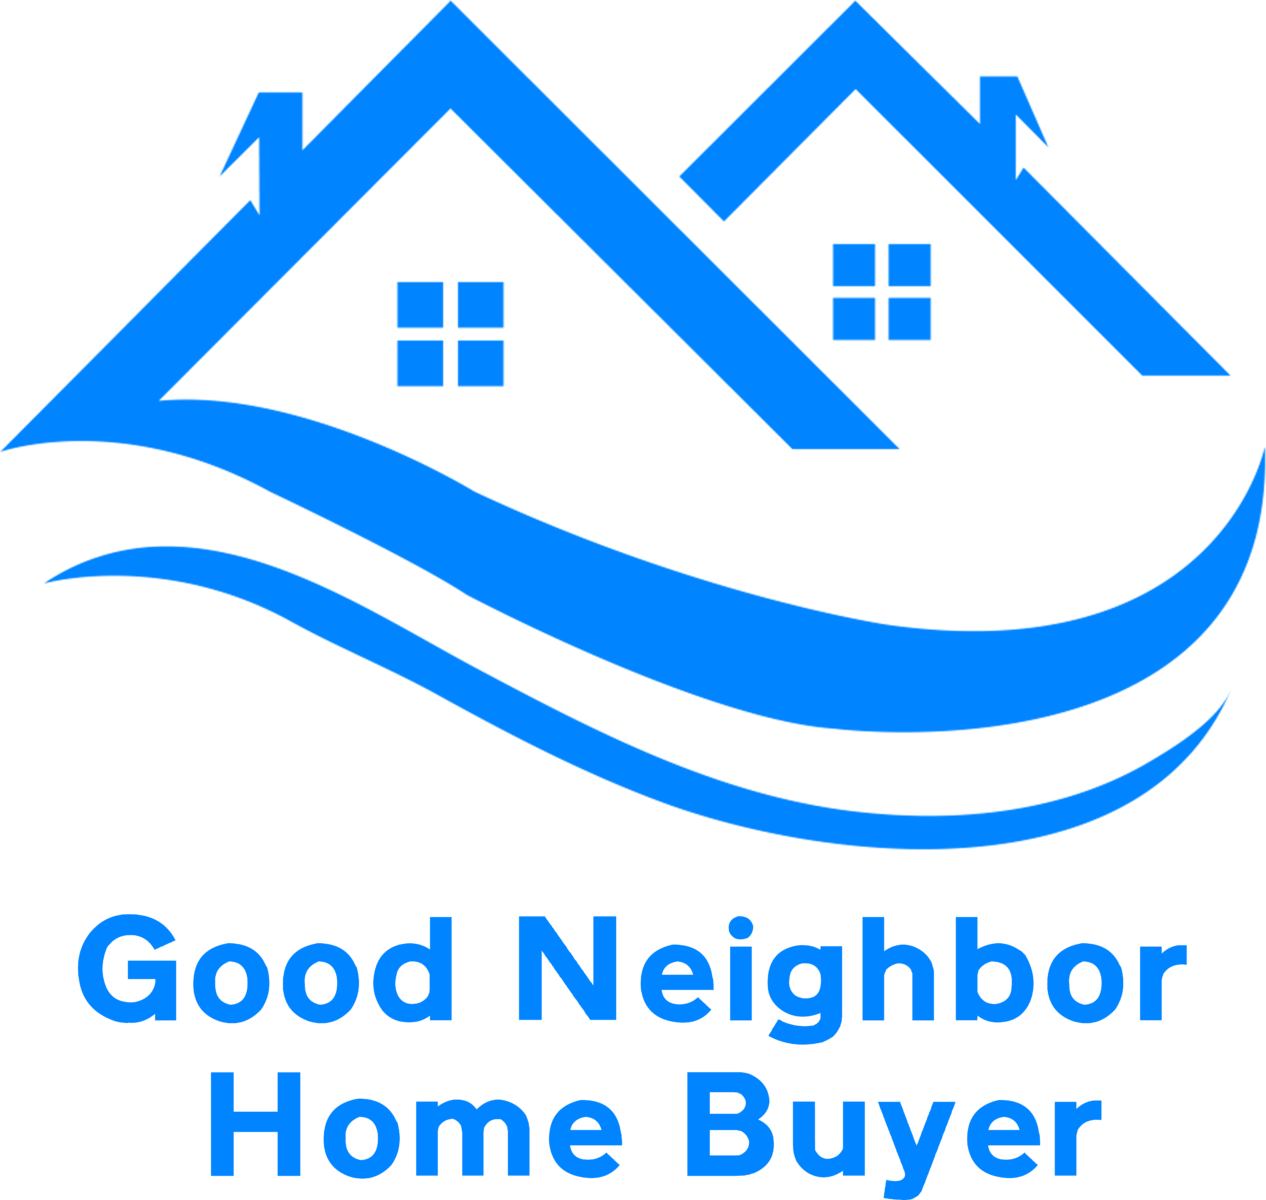 A Good Neighbor Home Buyer logo